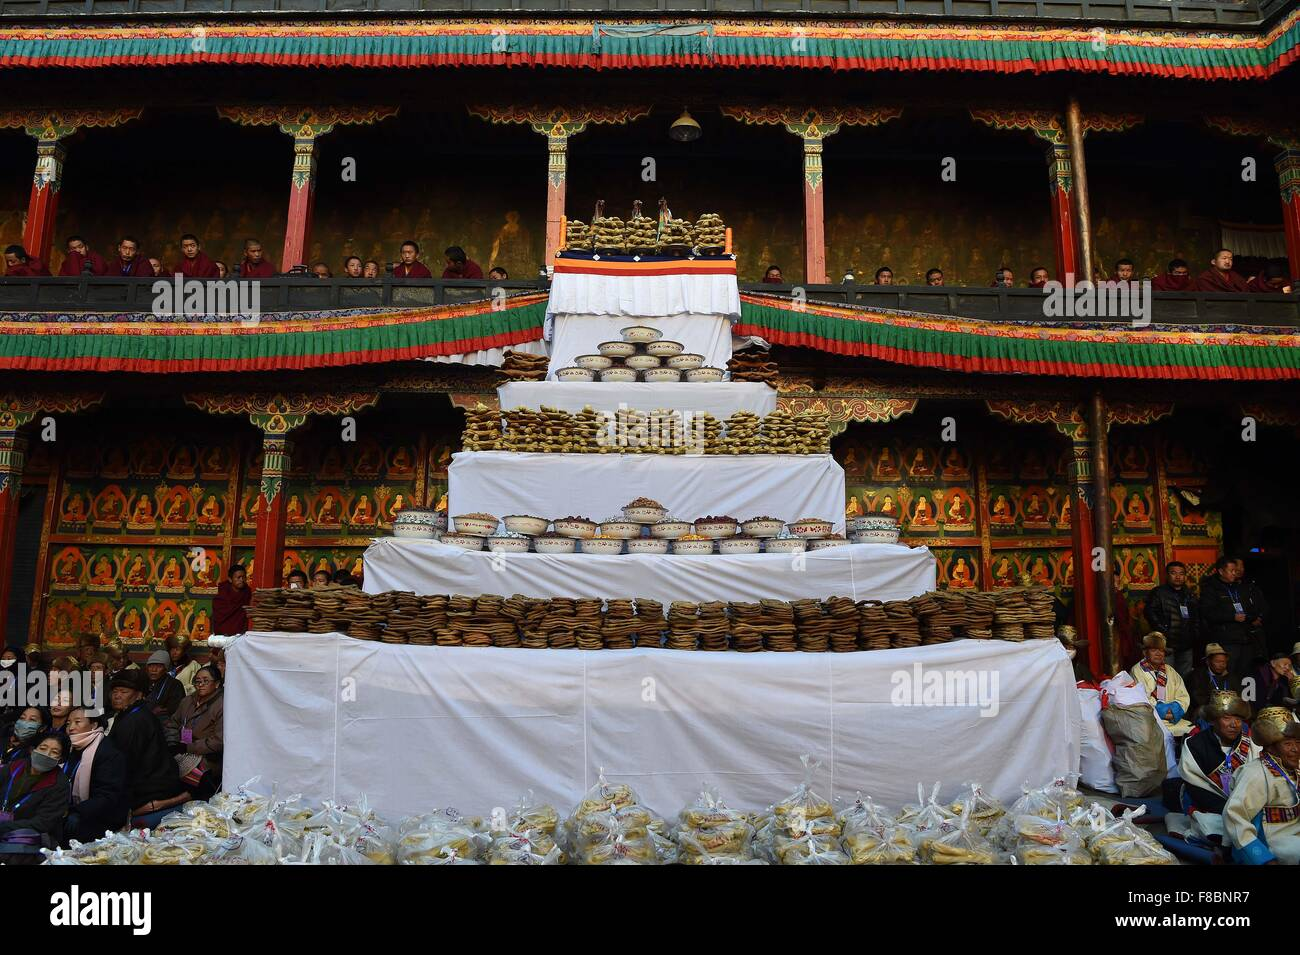 Xigaze. 8th Dec, 2015. Photo taken on Dec. 8, 2015 shows offerings on the 20th anniversary of the enthronement of - Stock Image